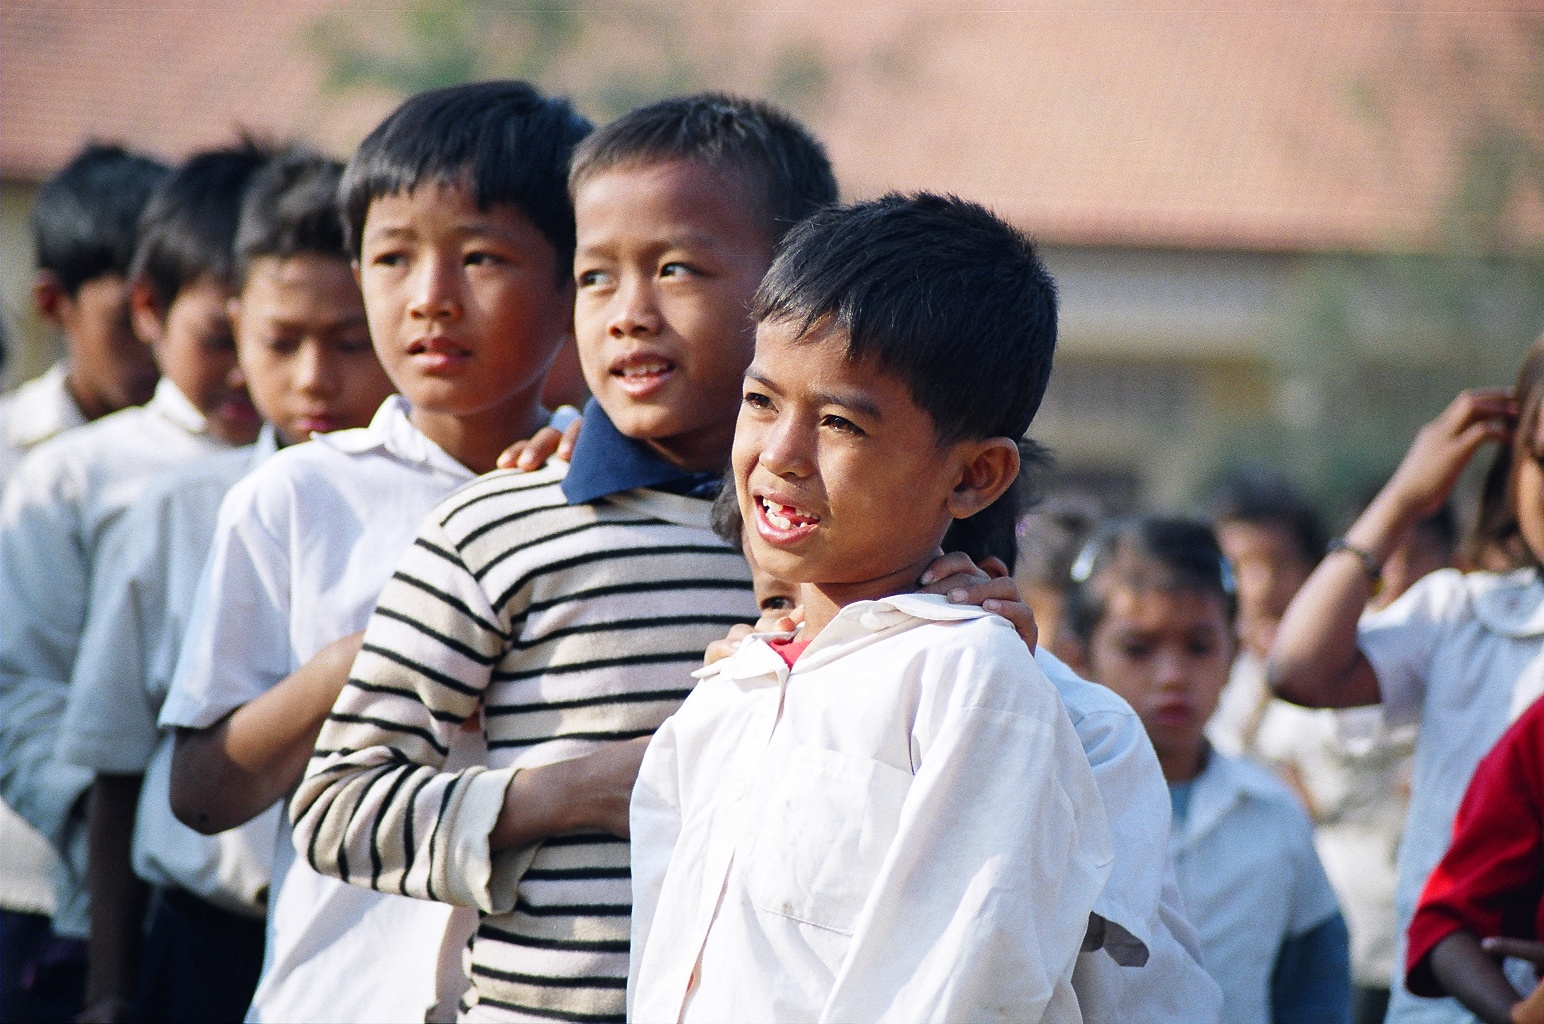 School children in Cambodia. Corruption within the country's education system is reportedly rampant